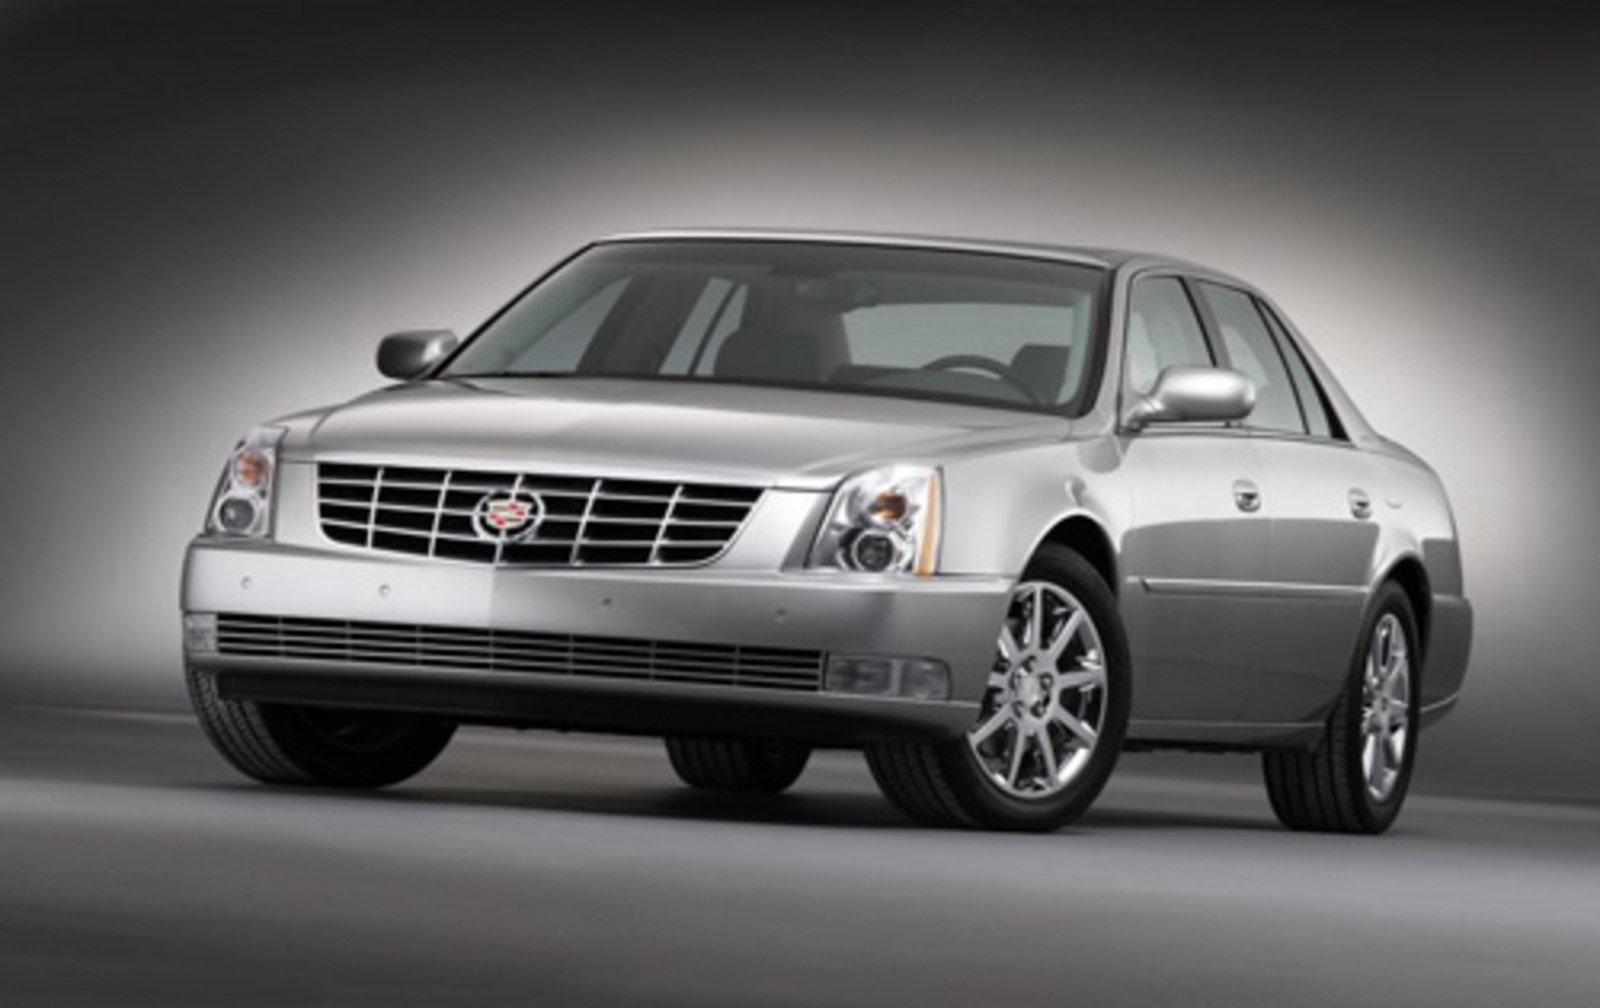 2006 Cadillac DTS Review - Top Speed